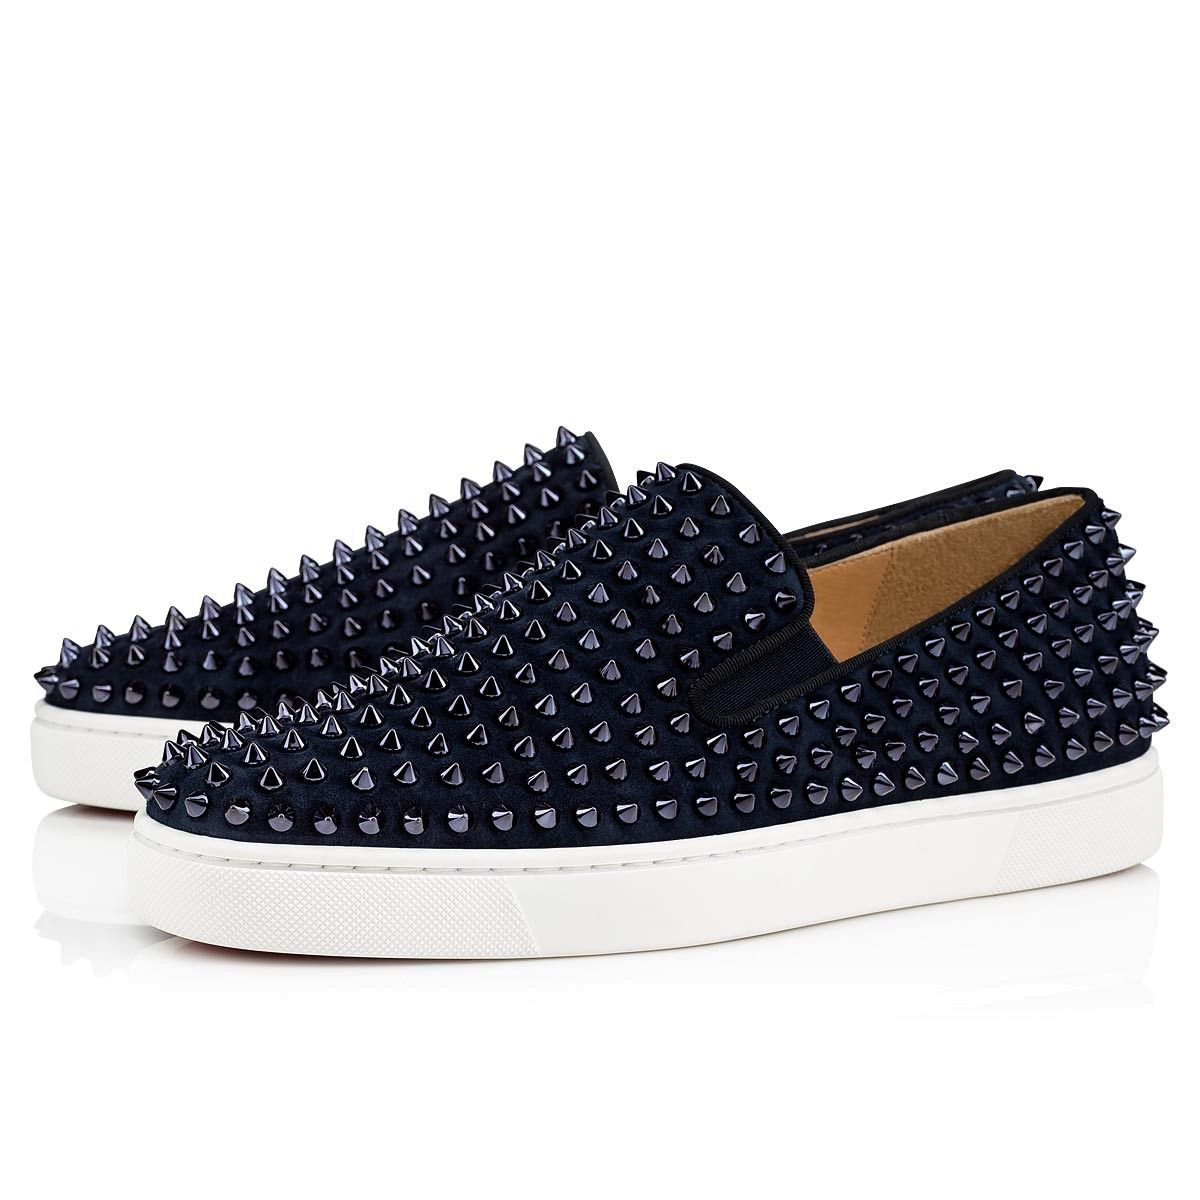 e4f3b8fb4753 CHRISTIAN LOUBOUTIN Roller-boat Veau Velours spikes.  christianlouboutin   shoes